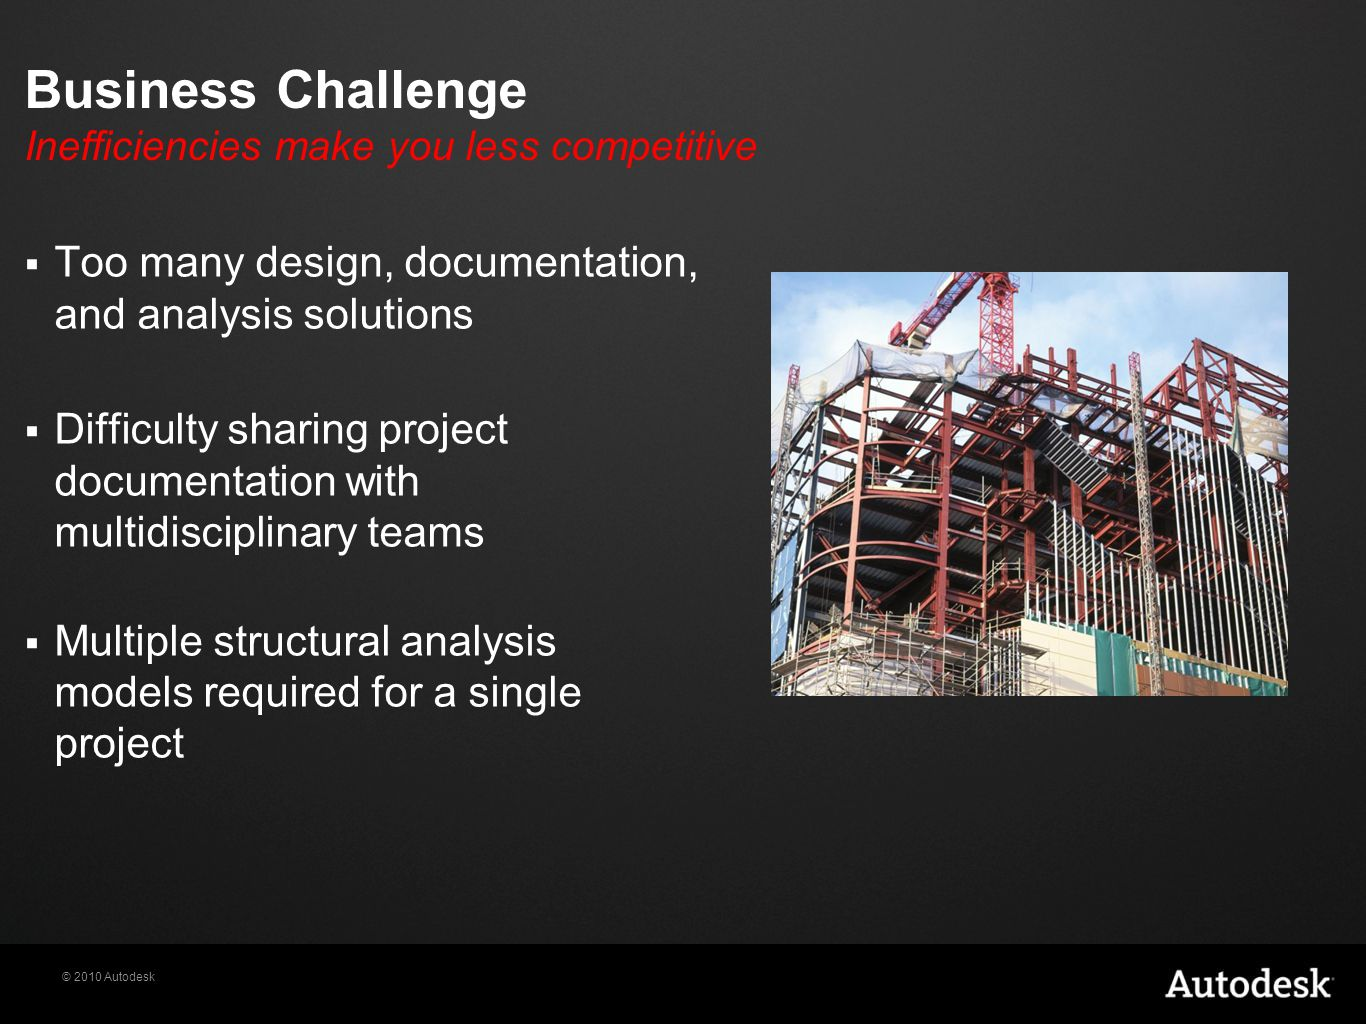 © 2010 Autodesk Business Challenge Inefficiencies make you less competitive  Too many design, documentation, and analysis solutions  Difficulty sharing project documentation with multidisciplinary teams  Multiple structural analysis models required for a single project